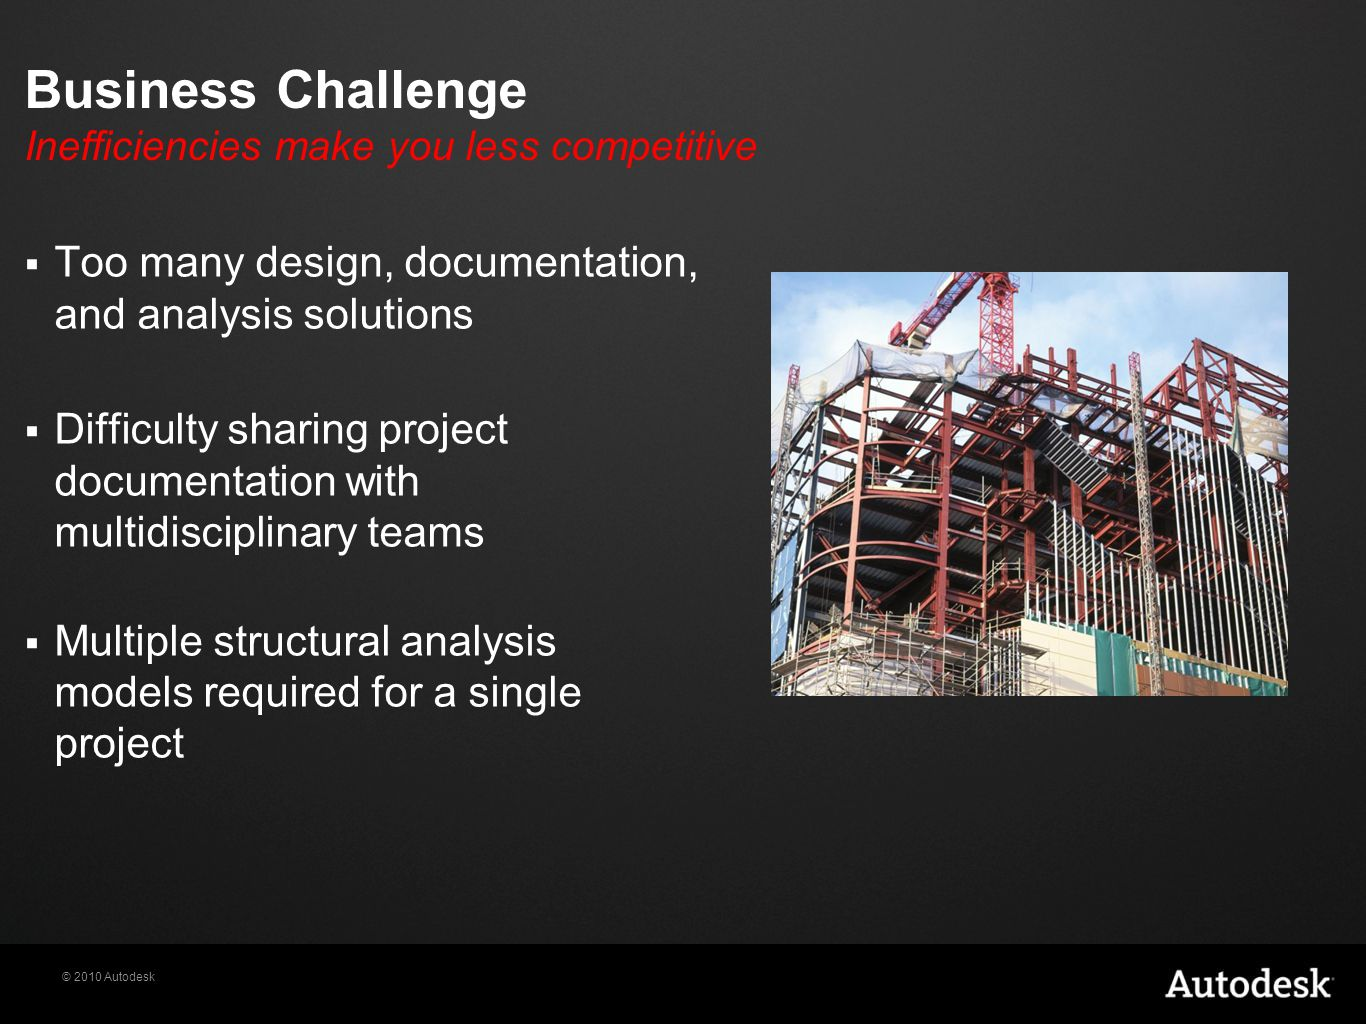 © 2010 Autodesk Business Challenge Inefficiencies make you less competitive  Too many design, documentation, and analysis solutions  Difficulty sharing project documentation with multidisciplinary teams  Multiple structural analysis models required for a single project